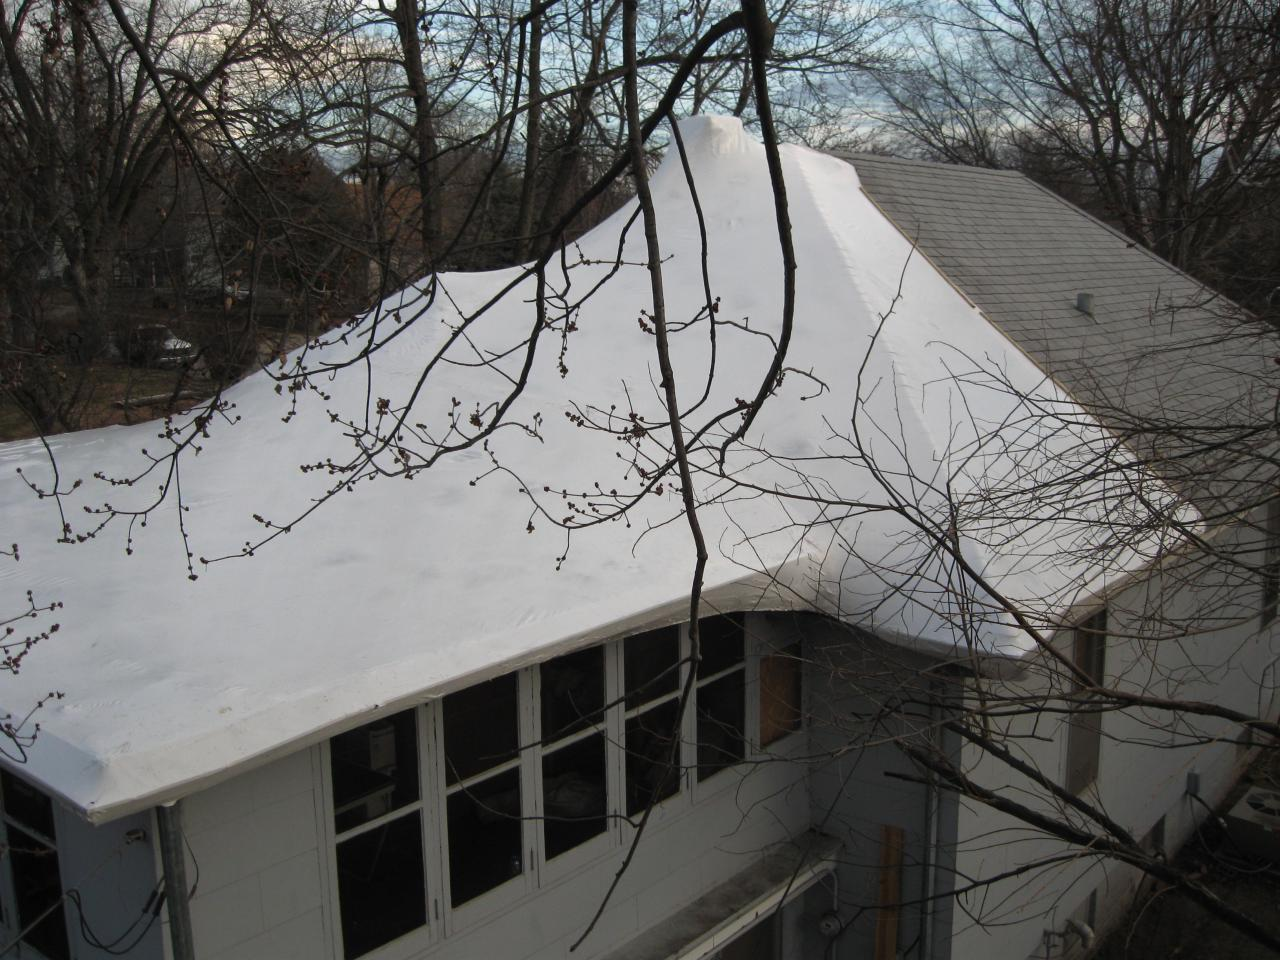 Roof shrinkwrapped due to storm damage